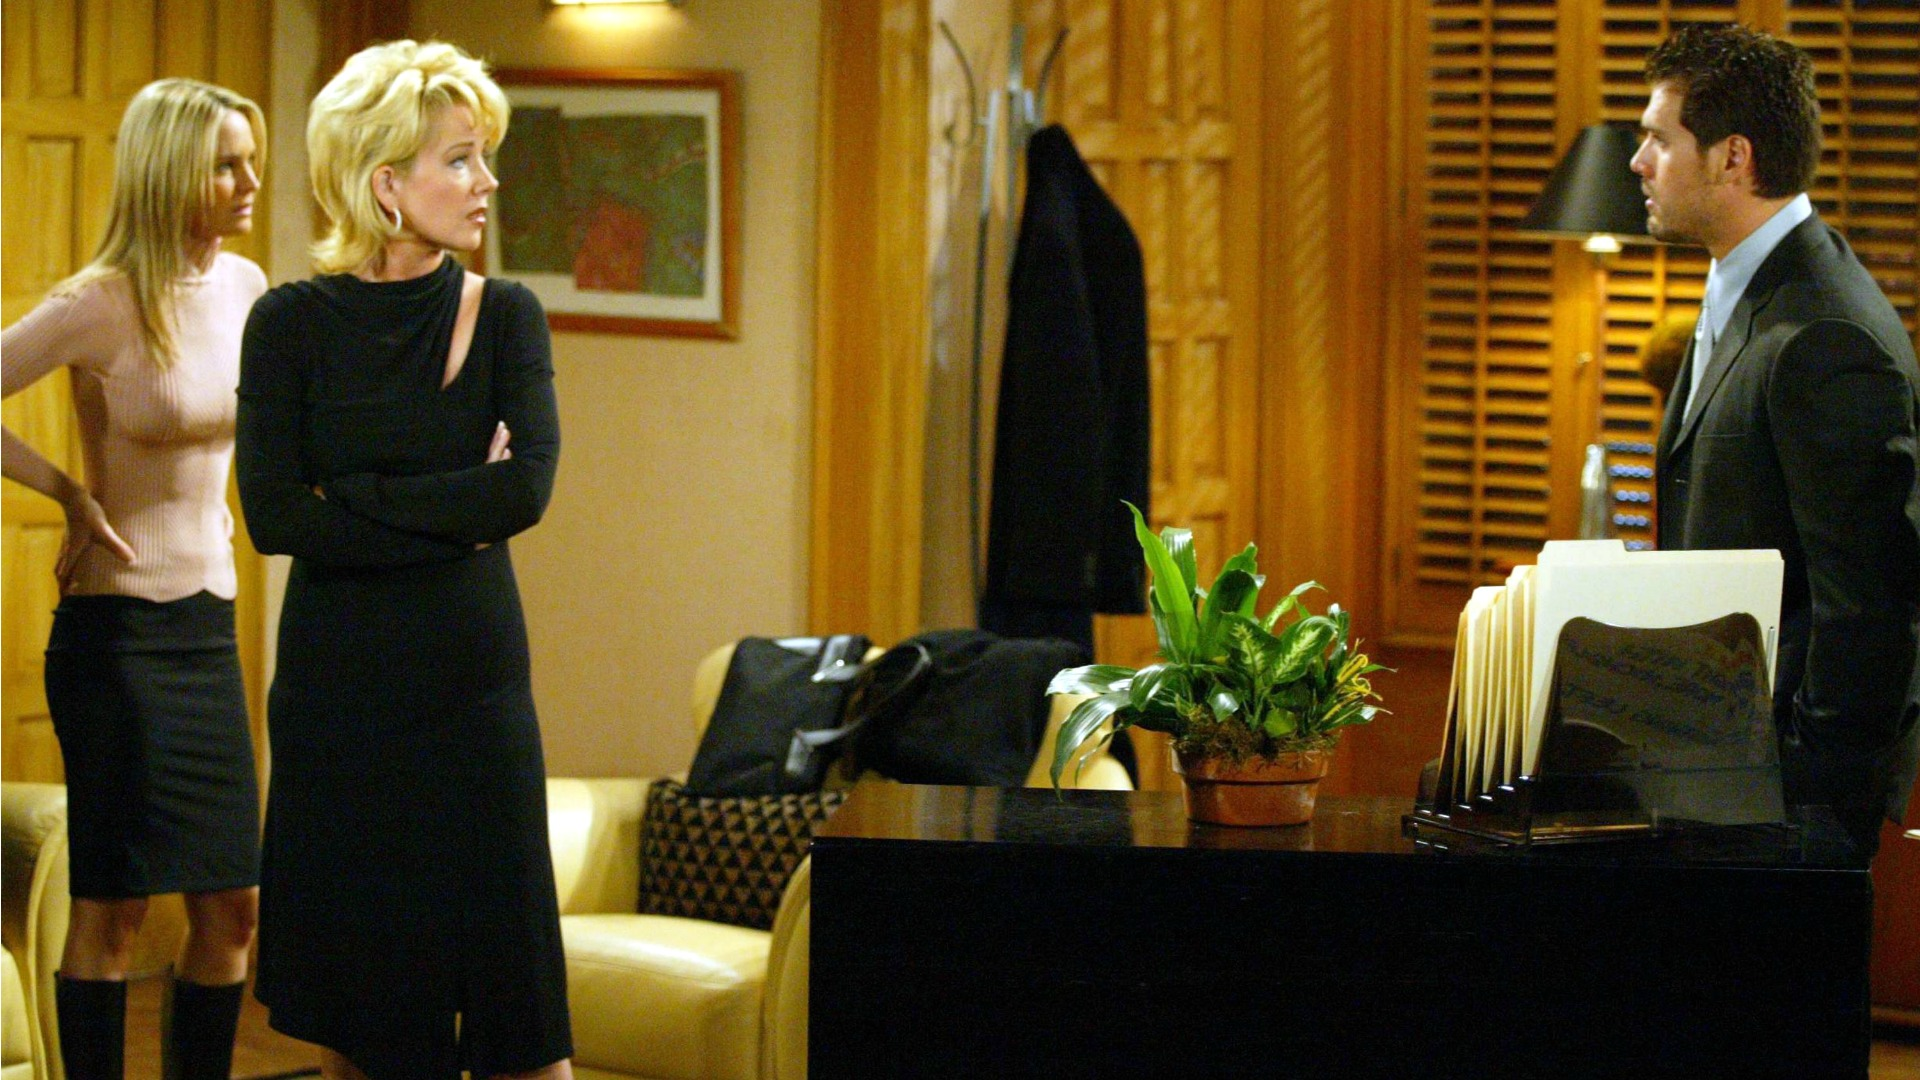 Genoa City wouldn't be the same without Nikki and Sharon's epic rivalry.